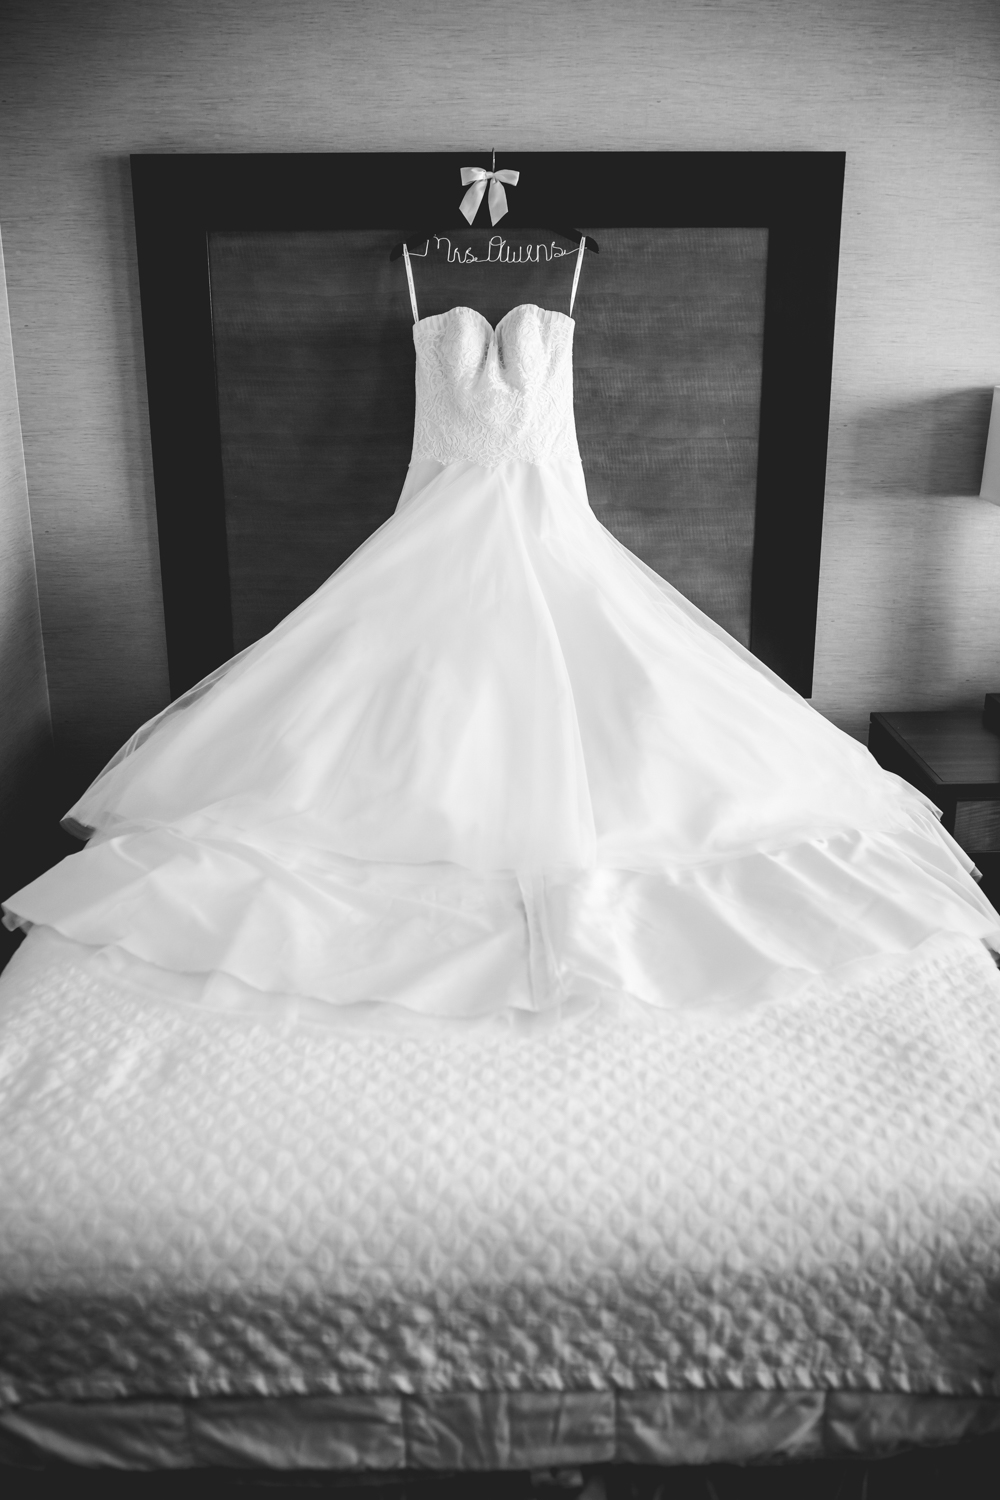 Wedding picture at Embassy Suite in Loveland. Photographed by Jared M. Gant of JMGant Photography